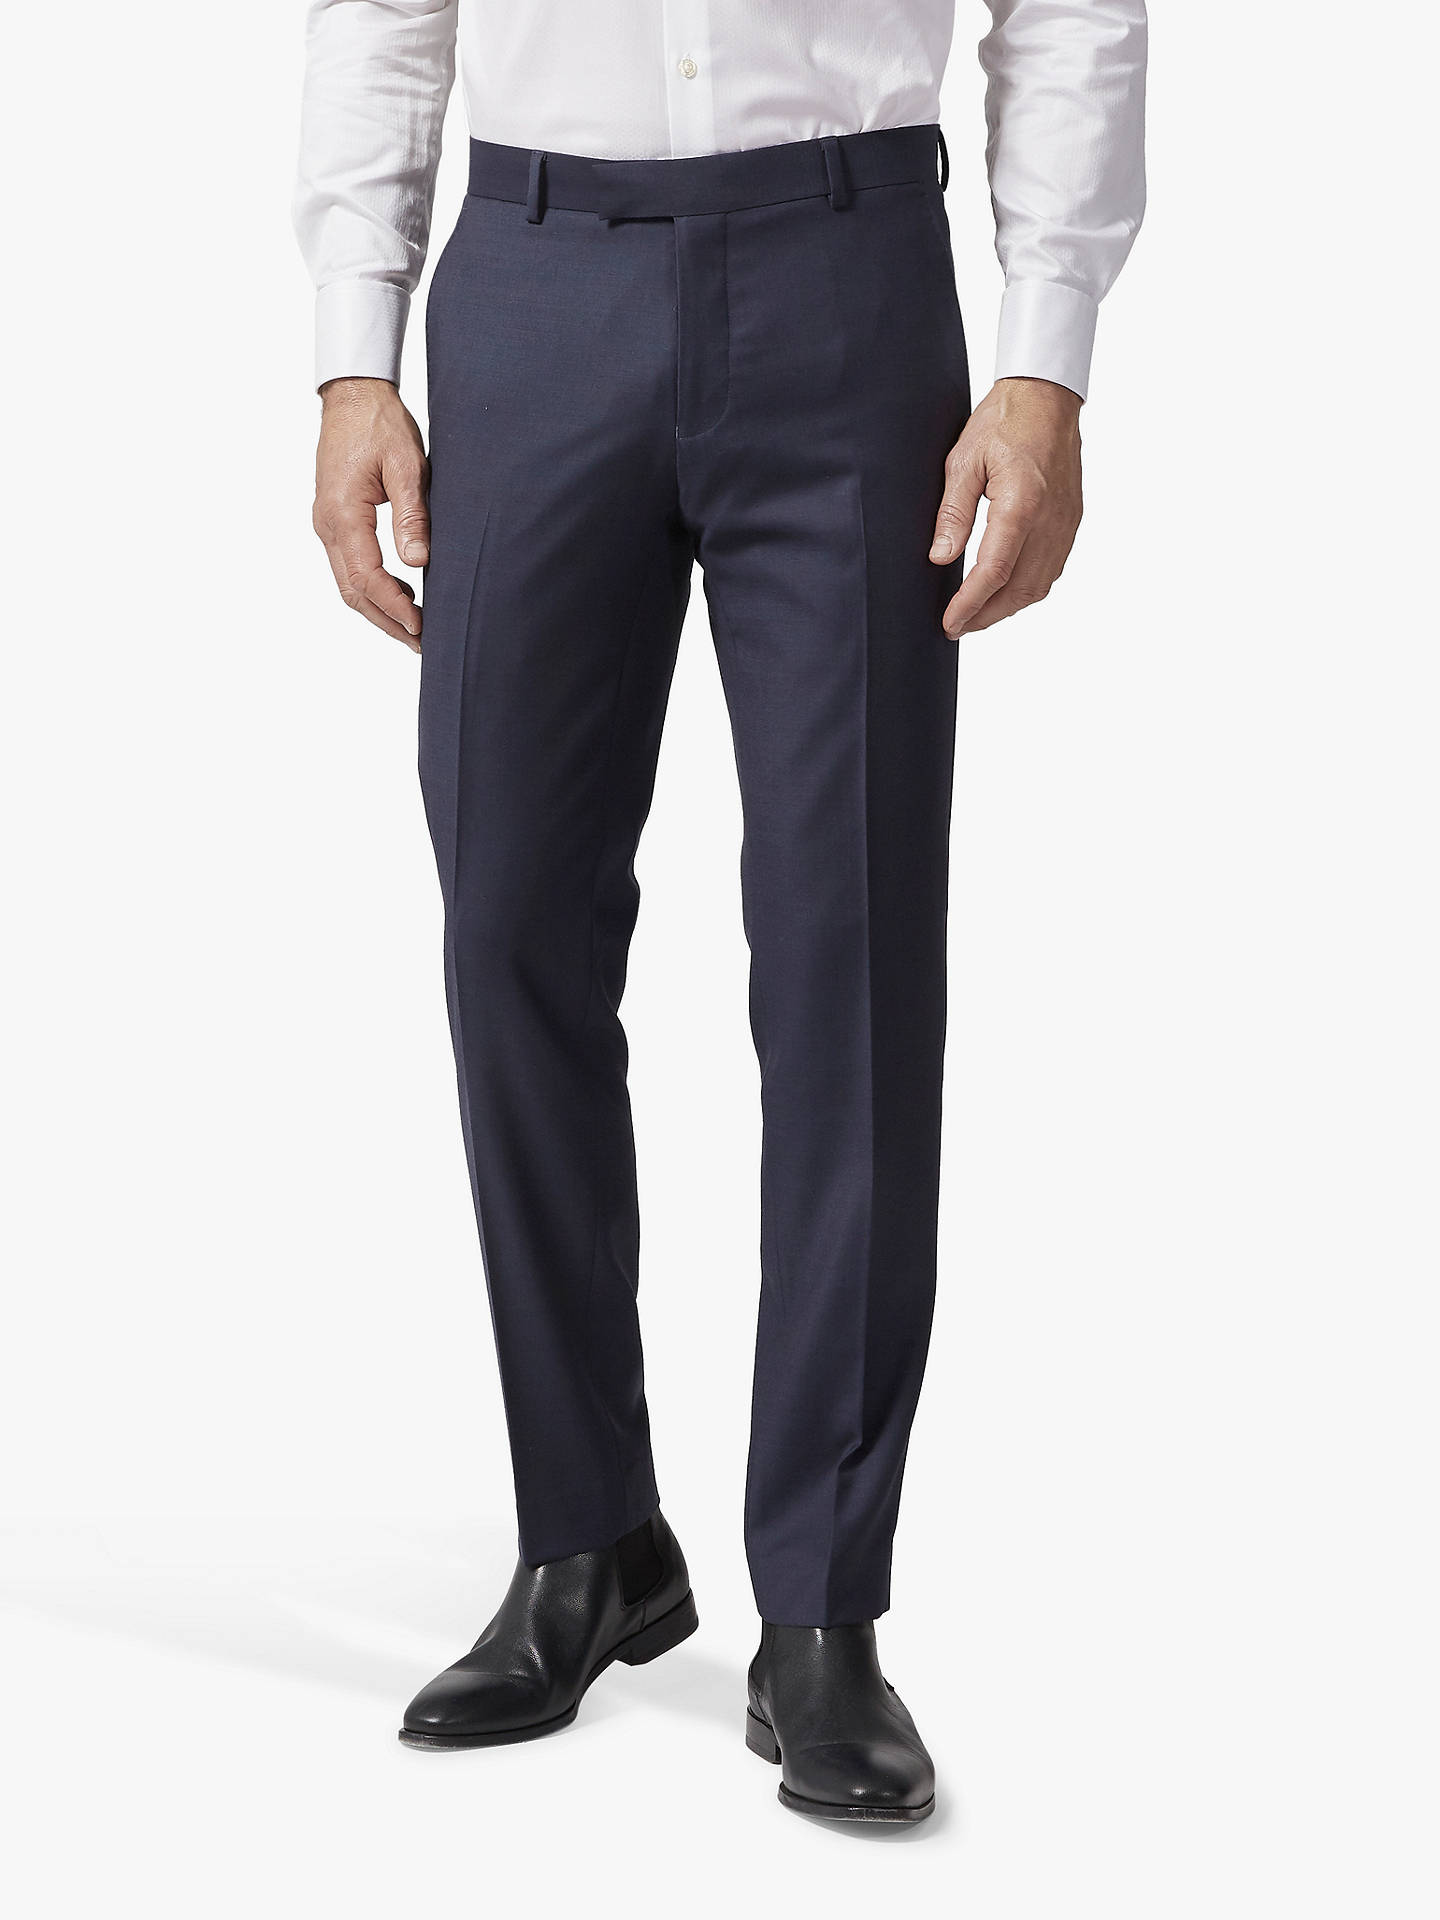 BuyRichard James Mayfair Pick and Pick Suit Trousers, Navy, 32S Online at johnlewis.com